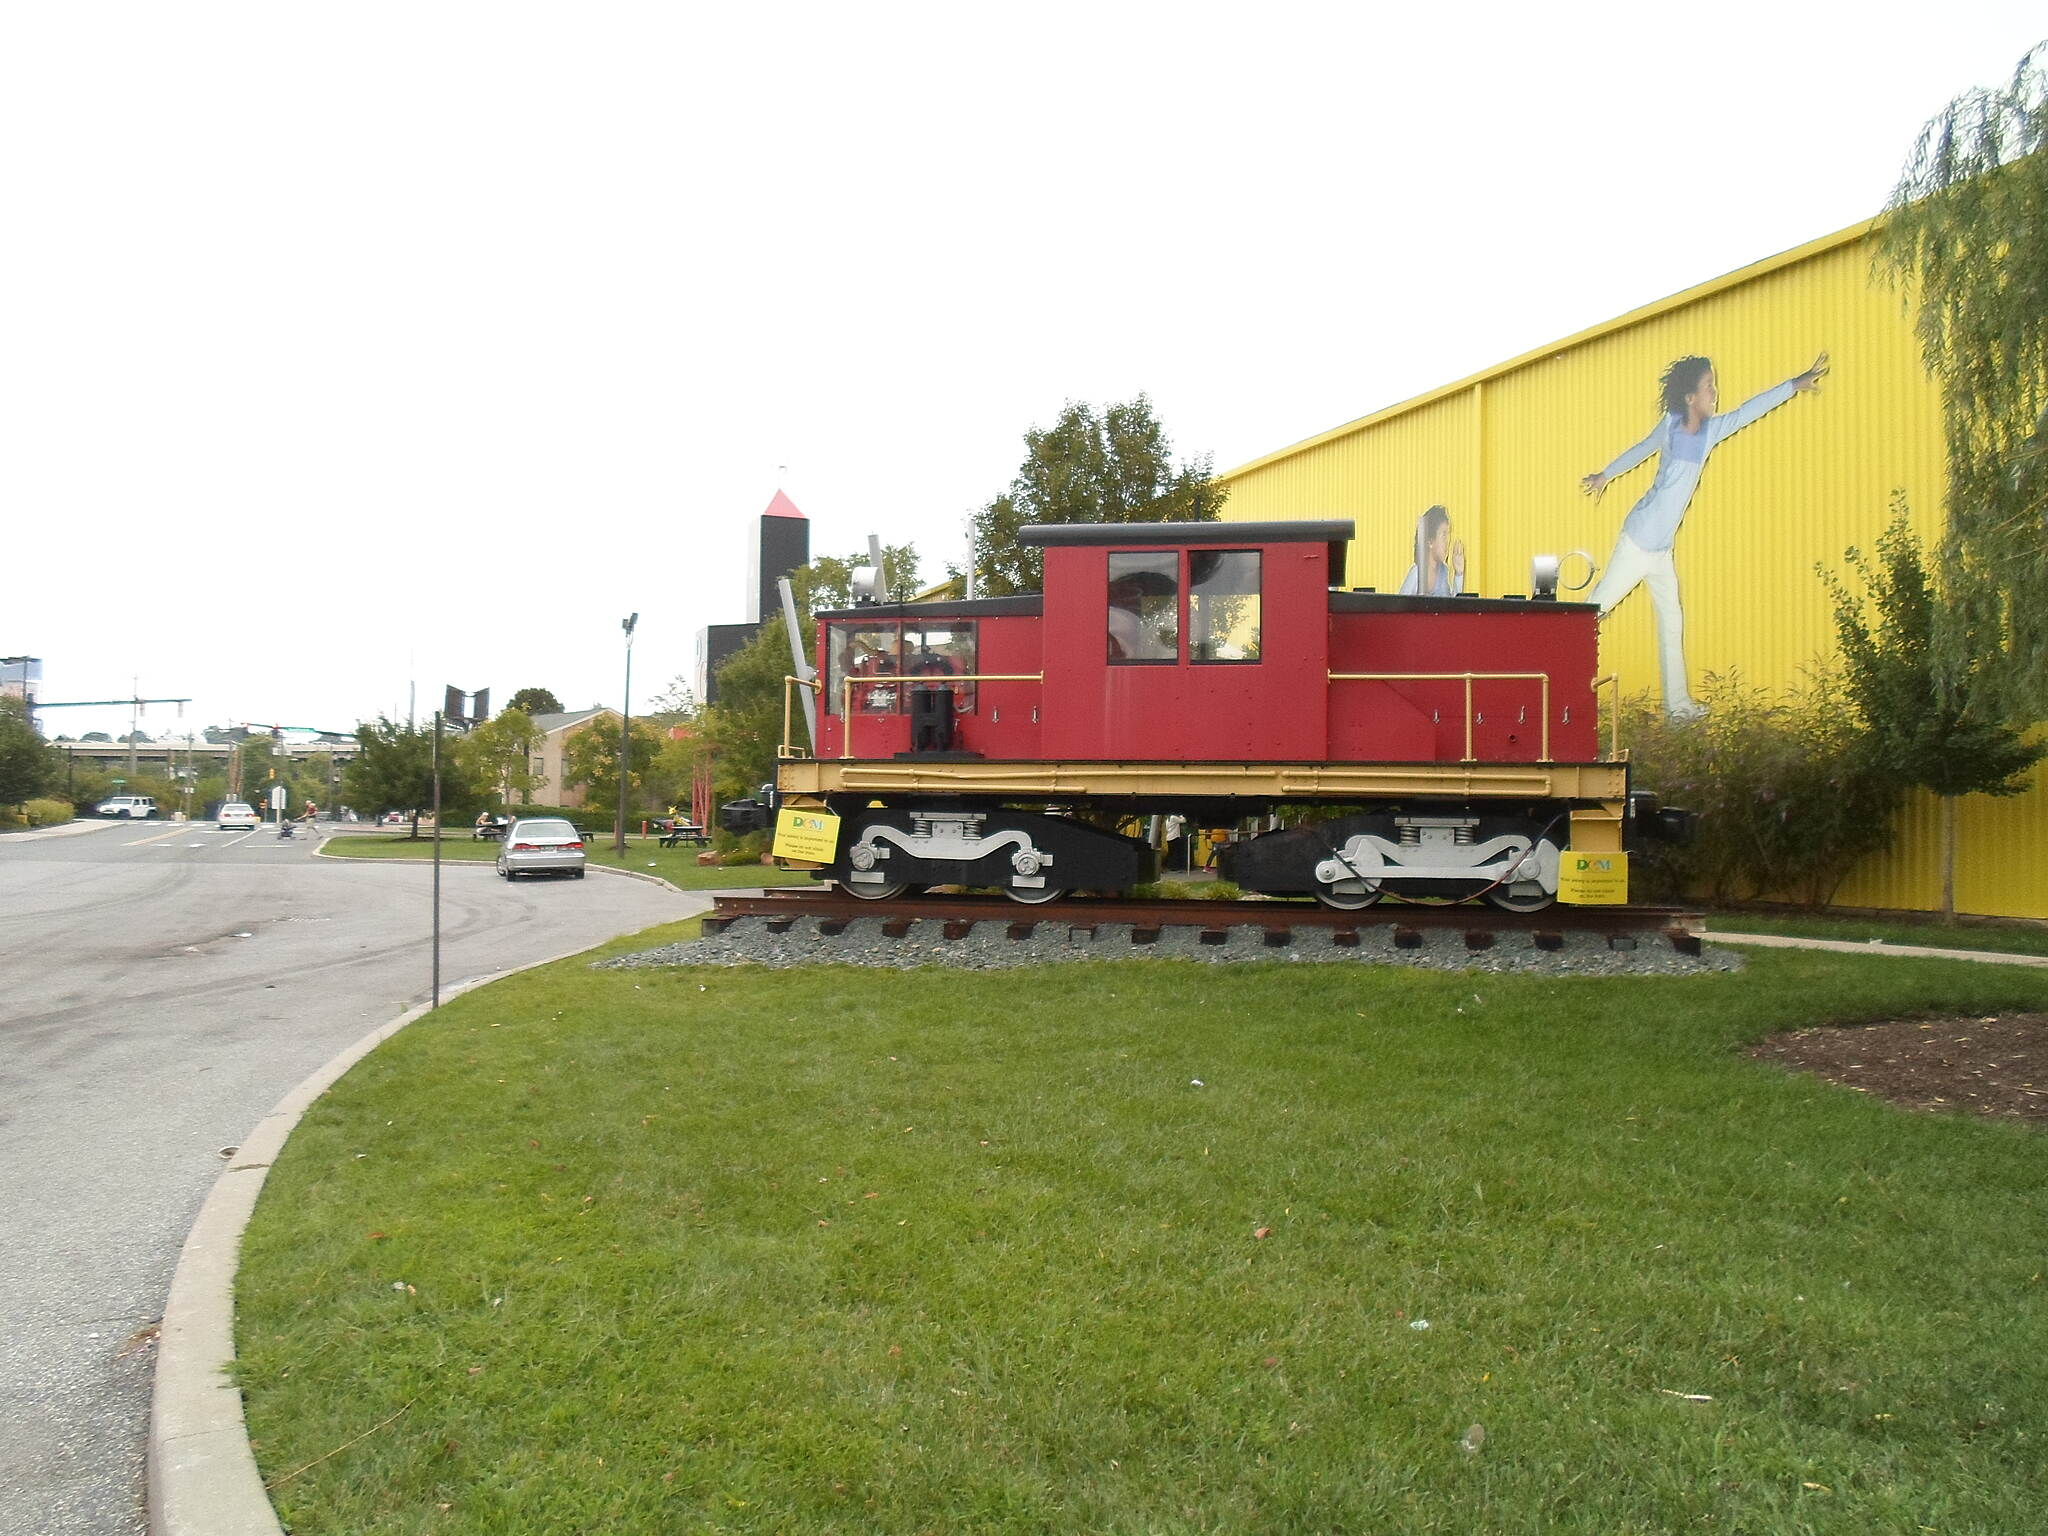 Christina Riverwalk Christina Riverwalk Restored train engine outside the Childrens' Museum.